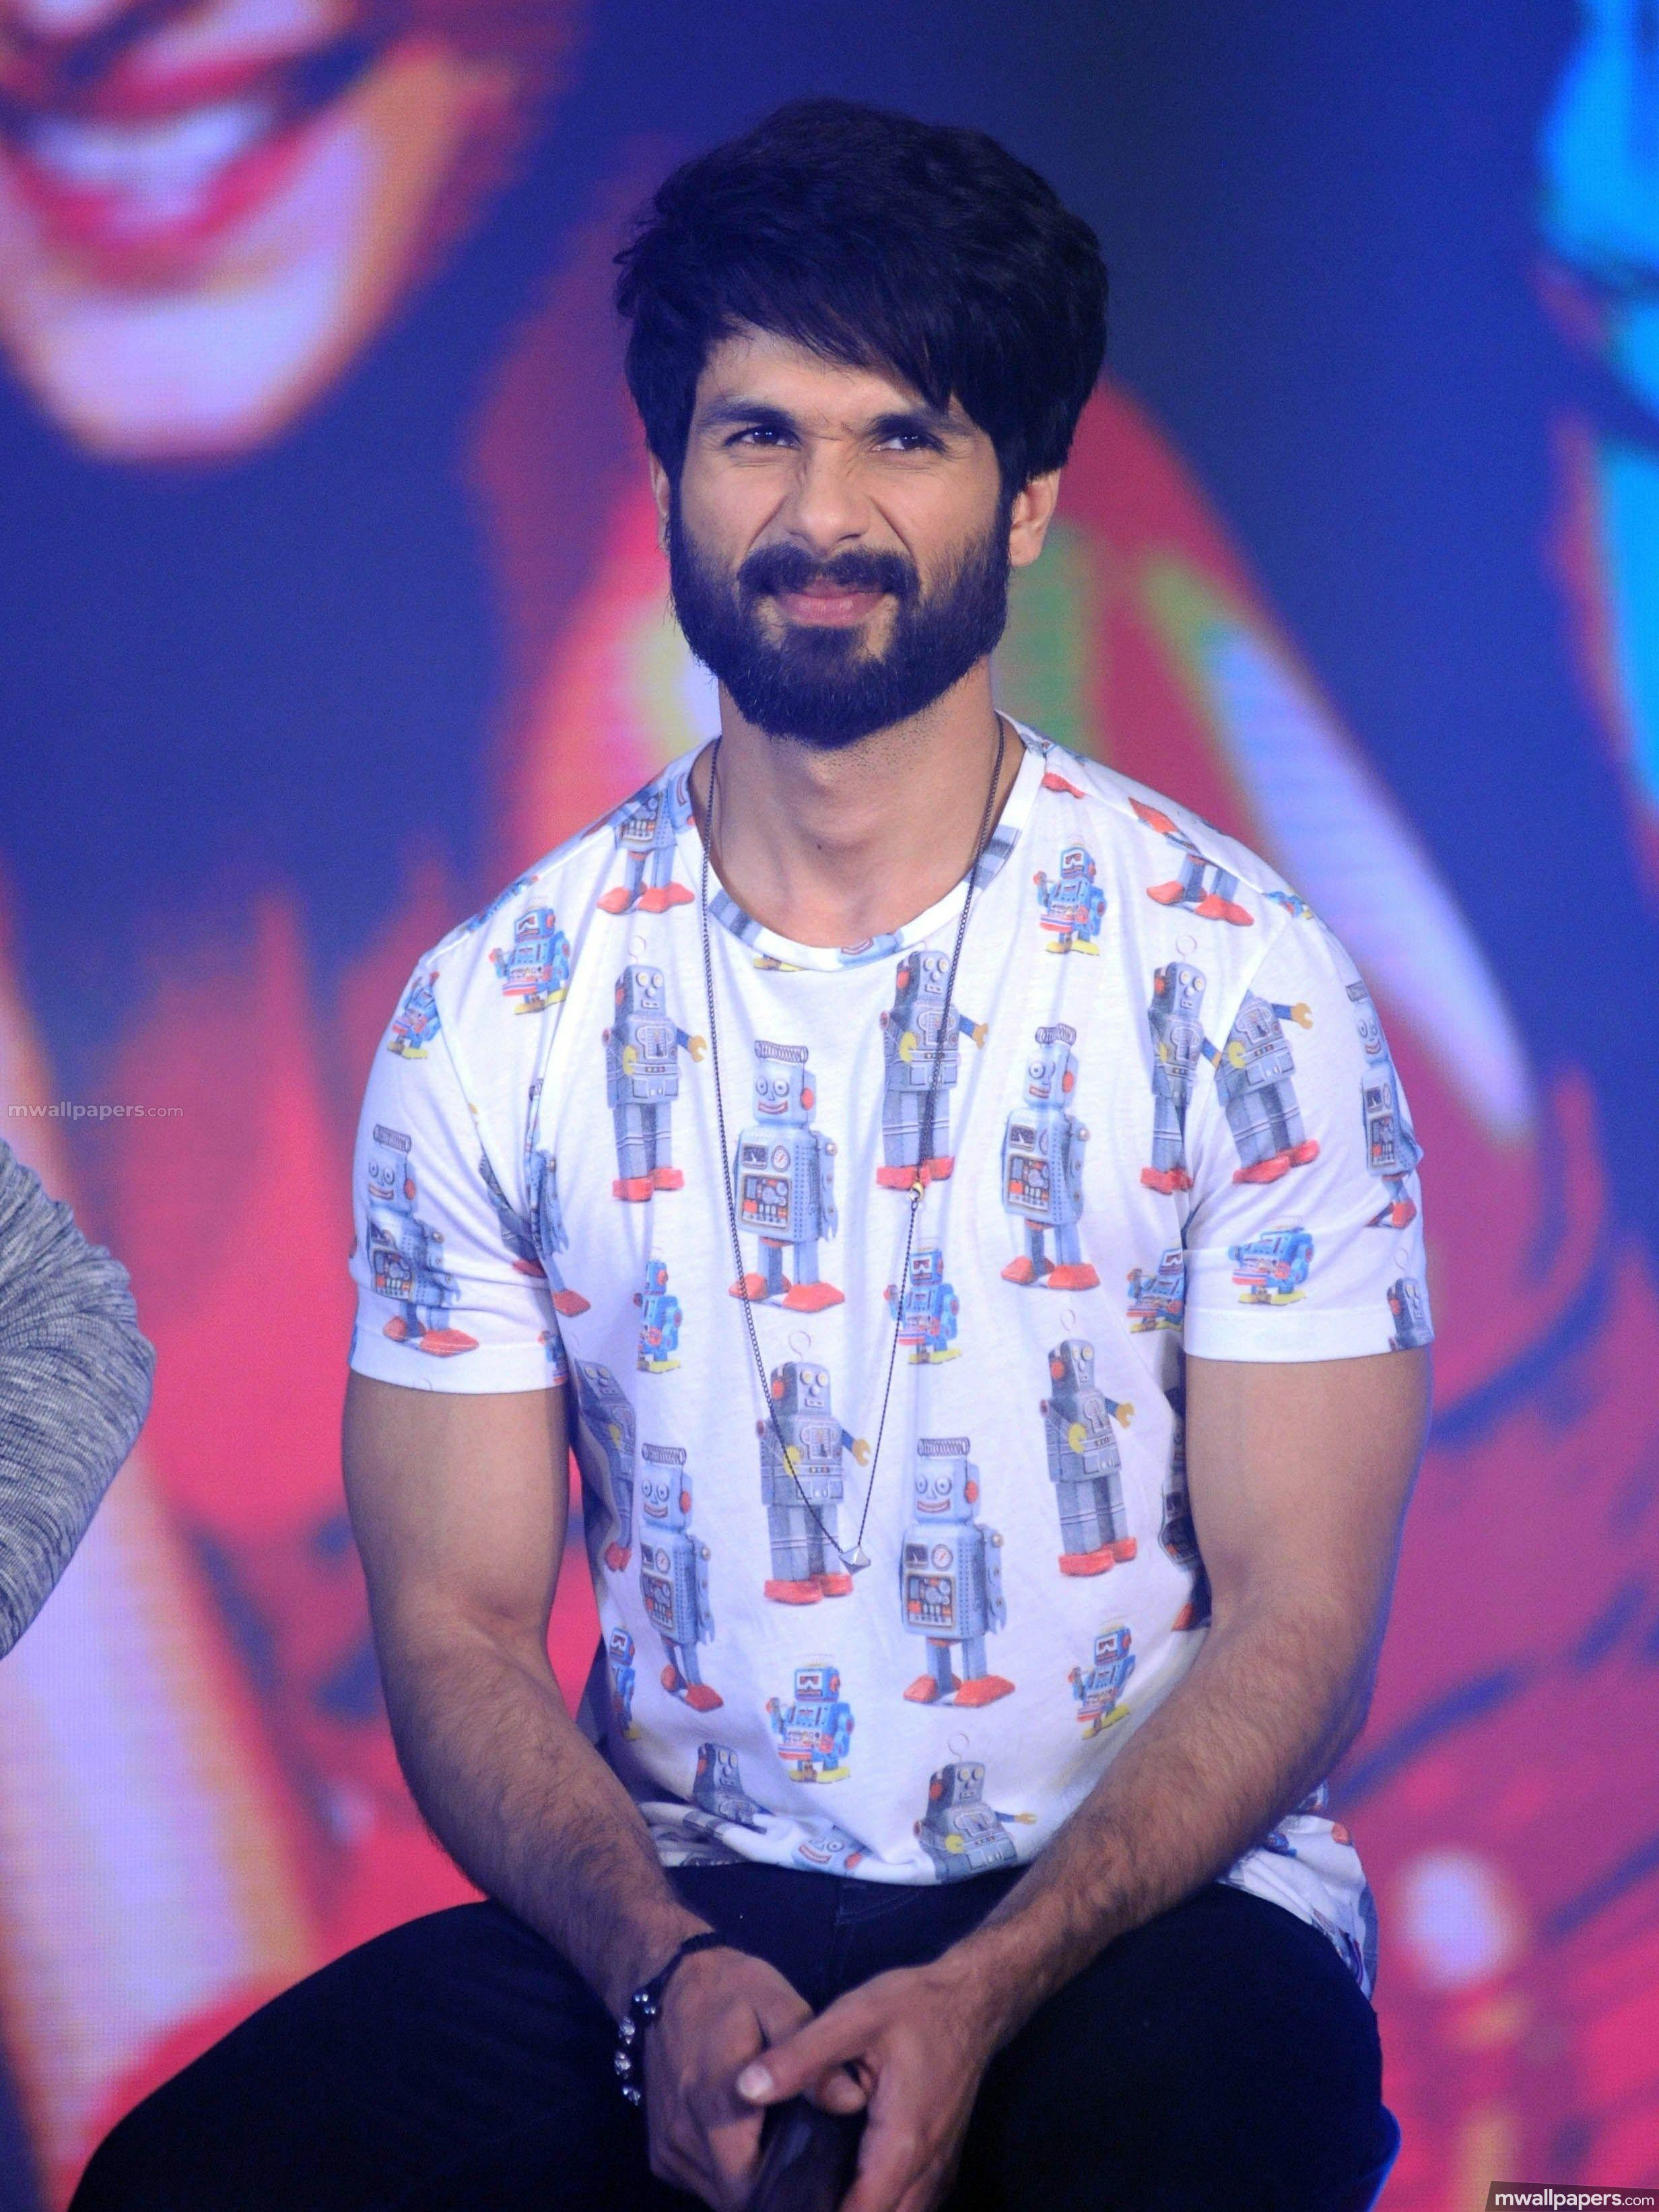 Shahid Kapoor Hd Photos Wallpapers 1080p Androidiphoneipad